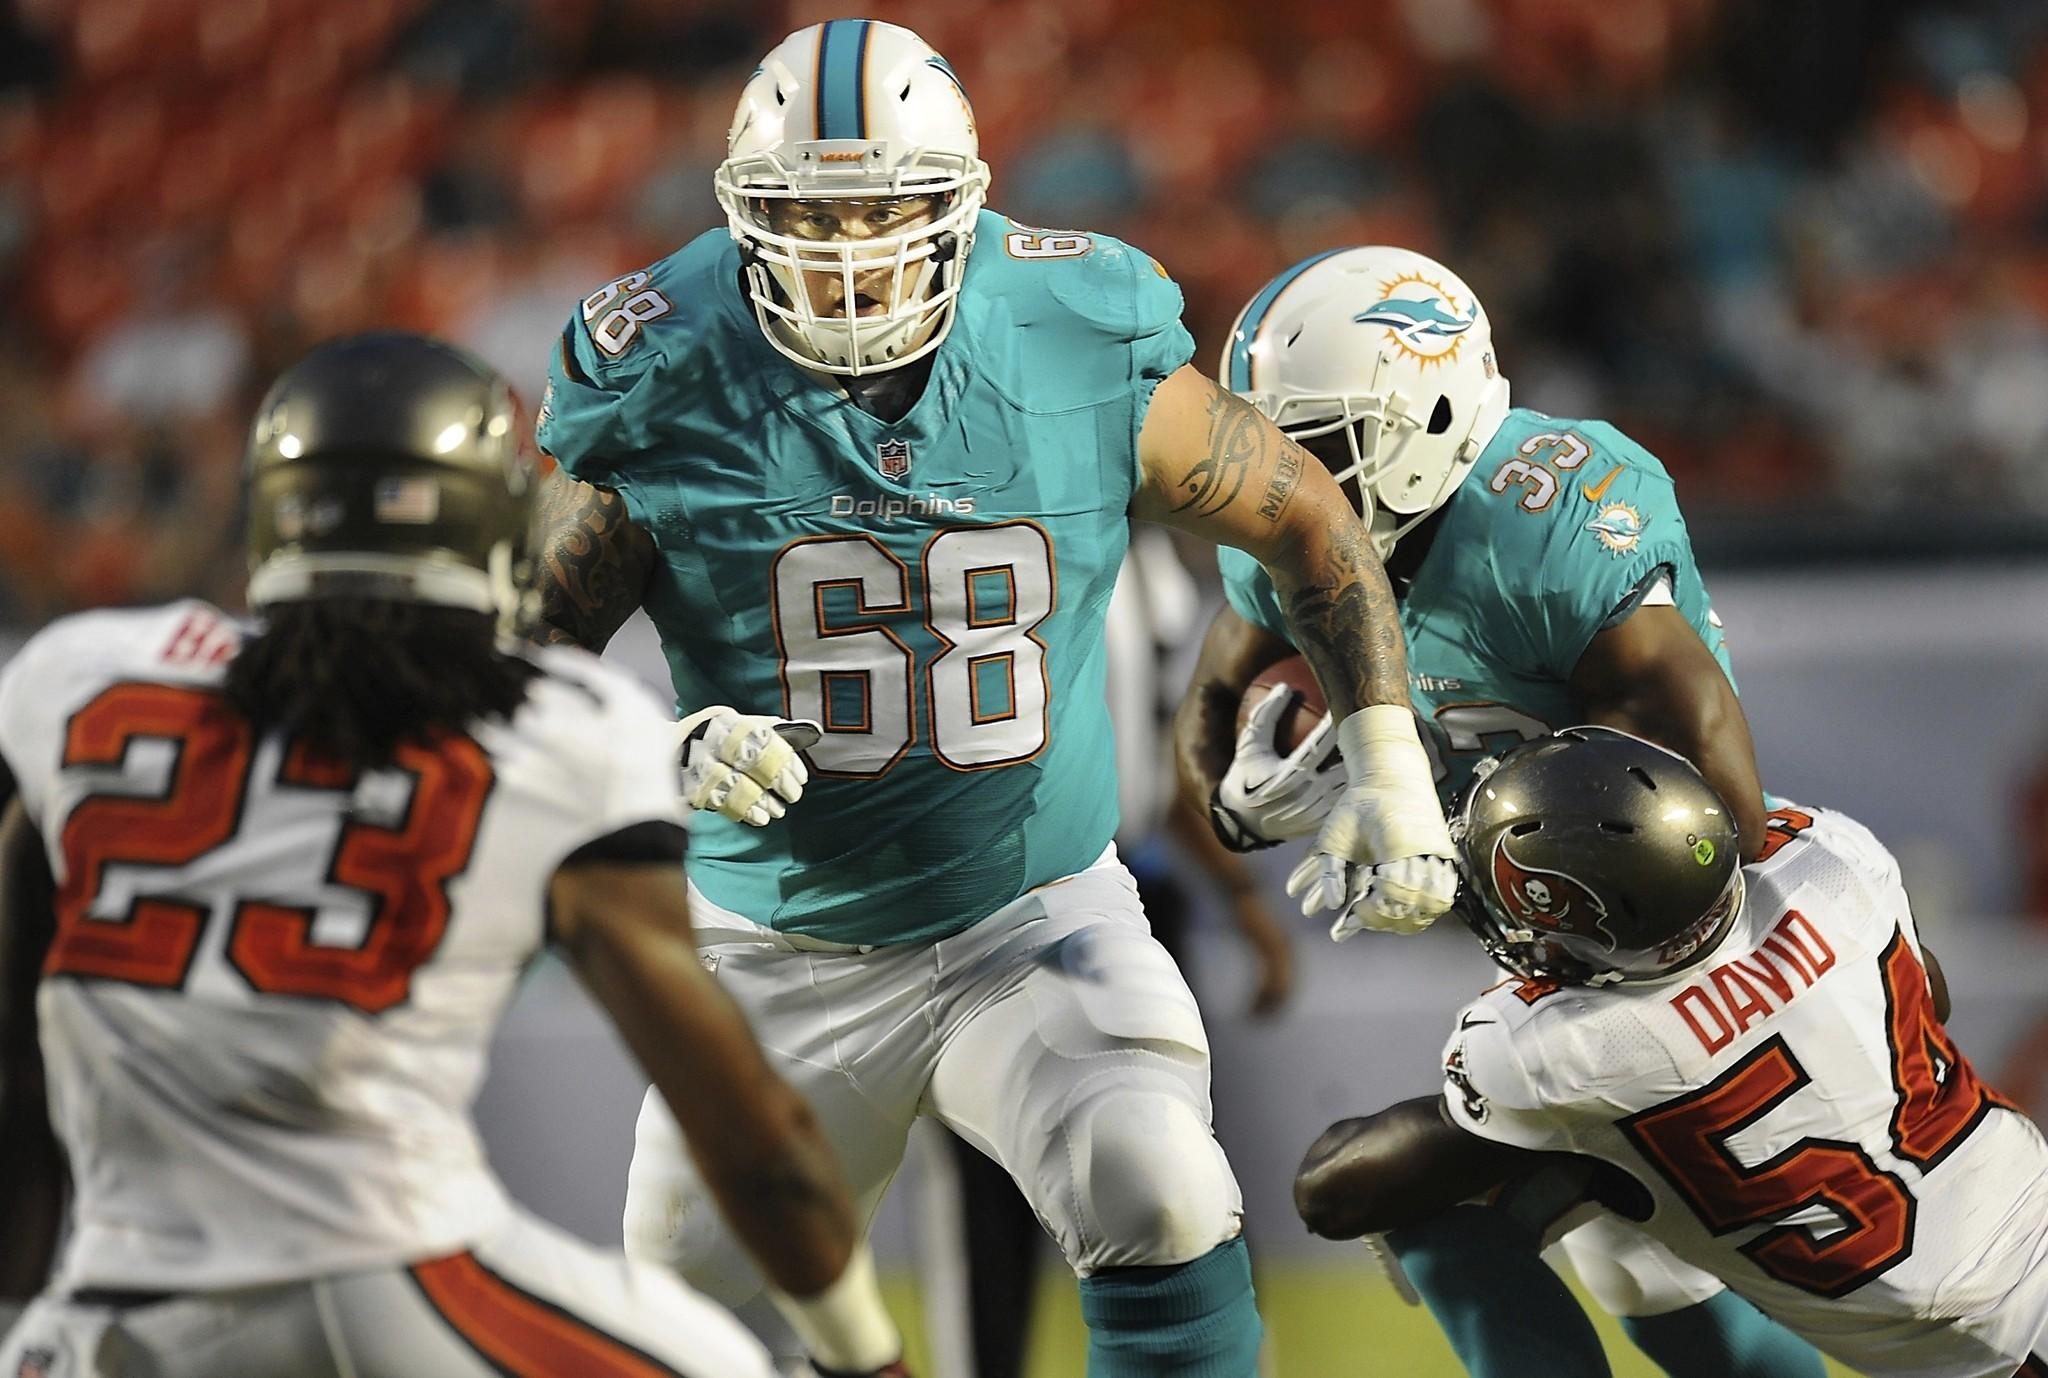 Richie Incognito is apologizing to Miami Dolphins teammate Jonathan Martin in the wake of an NFL-ordered probe of a bullying scandal.